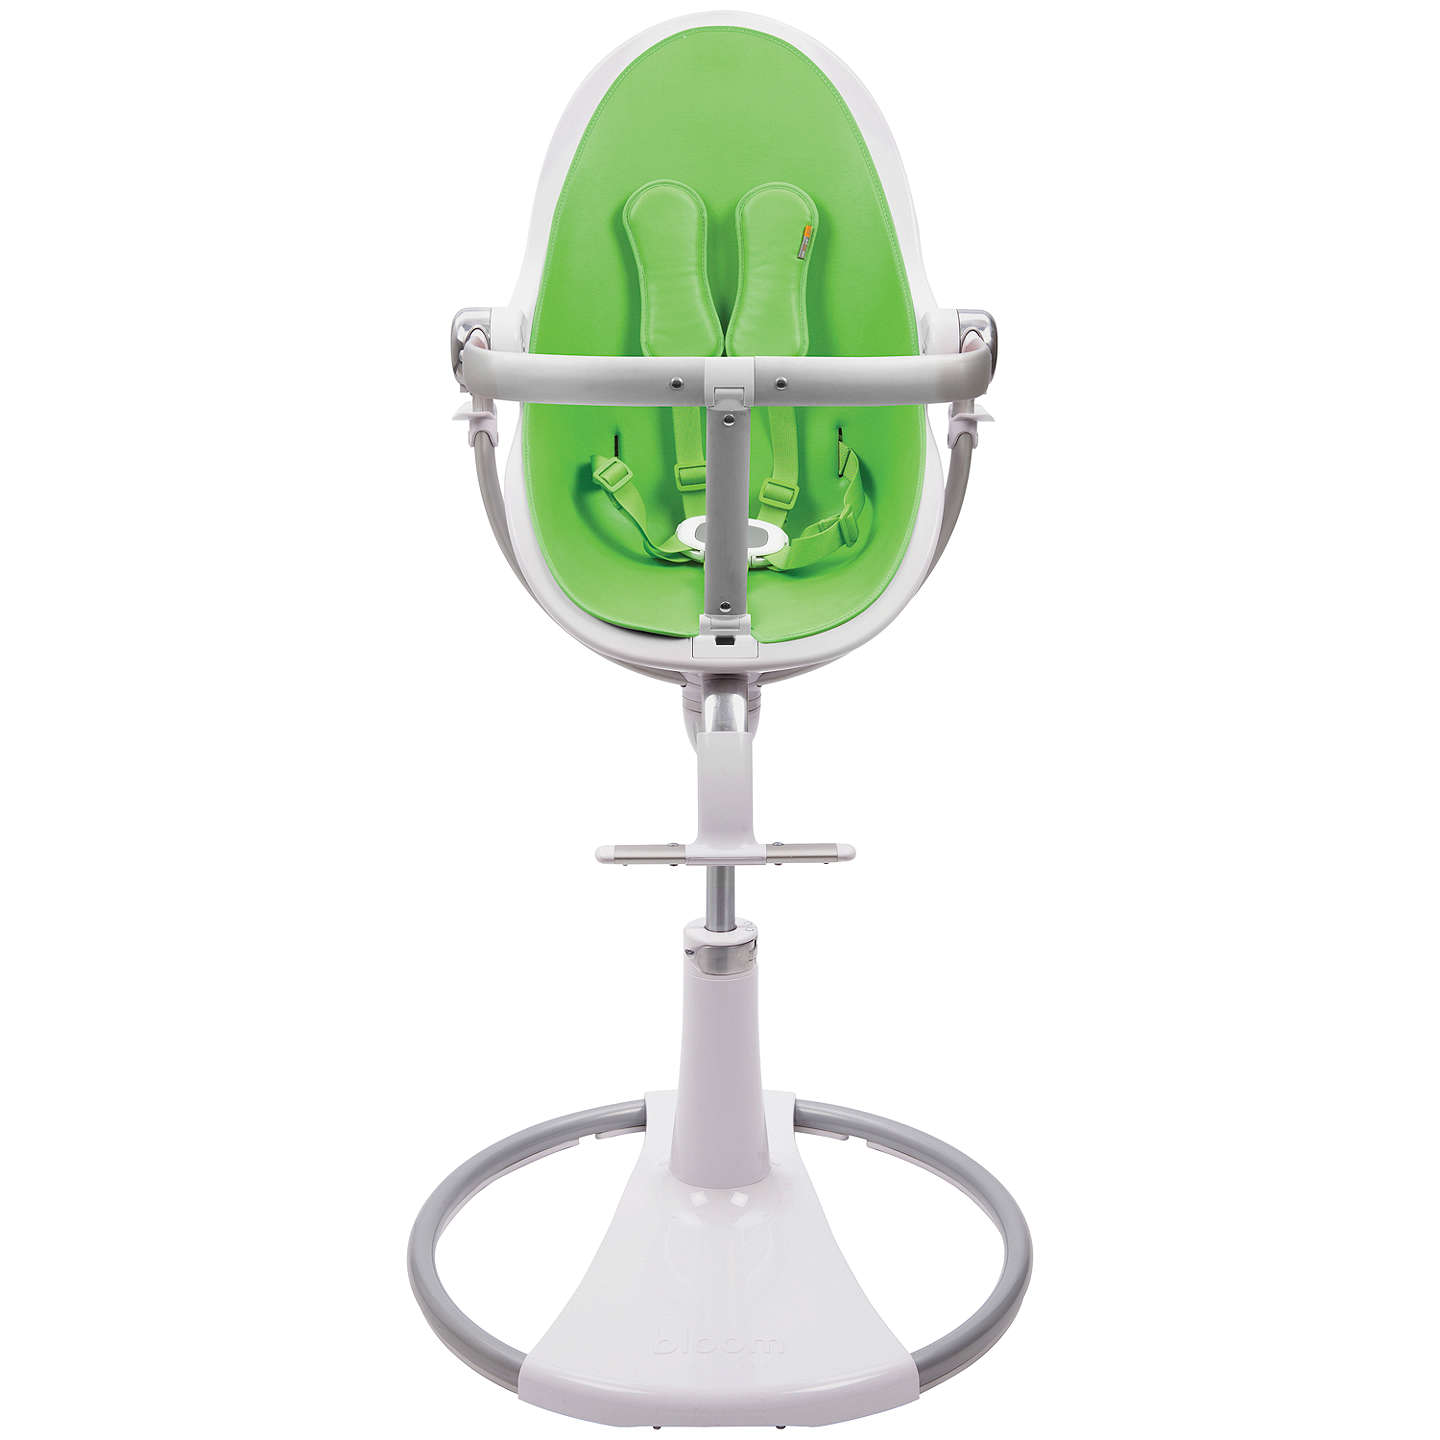 Buybloom Fresco Chrome Contemporary Leatherette Baby Chair, White, Gala Green Online at johnlewis.com